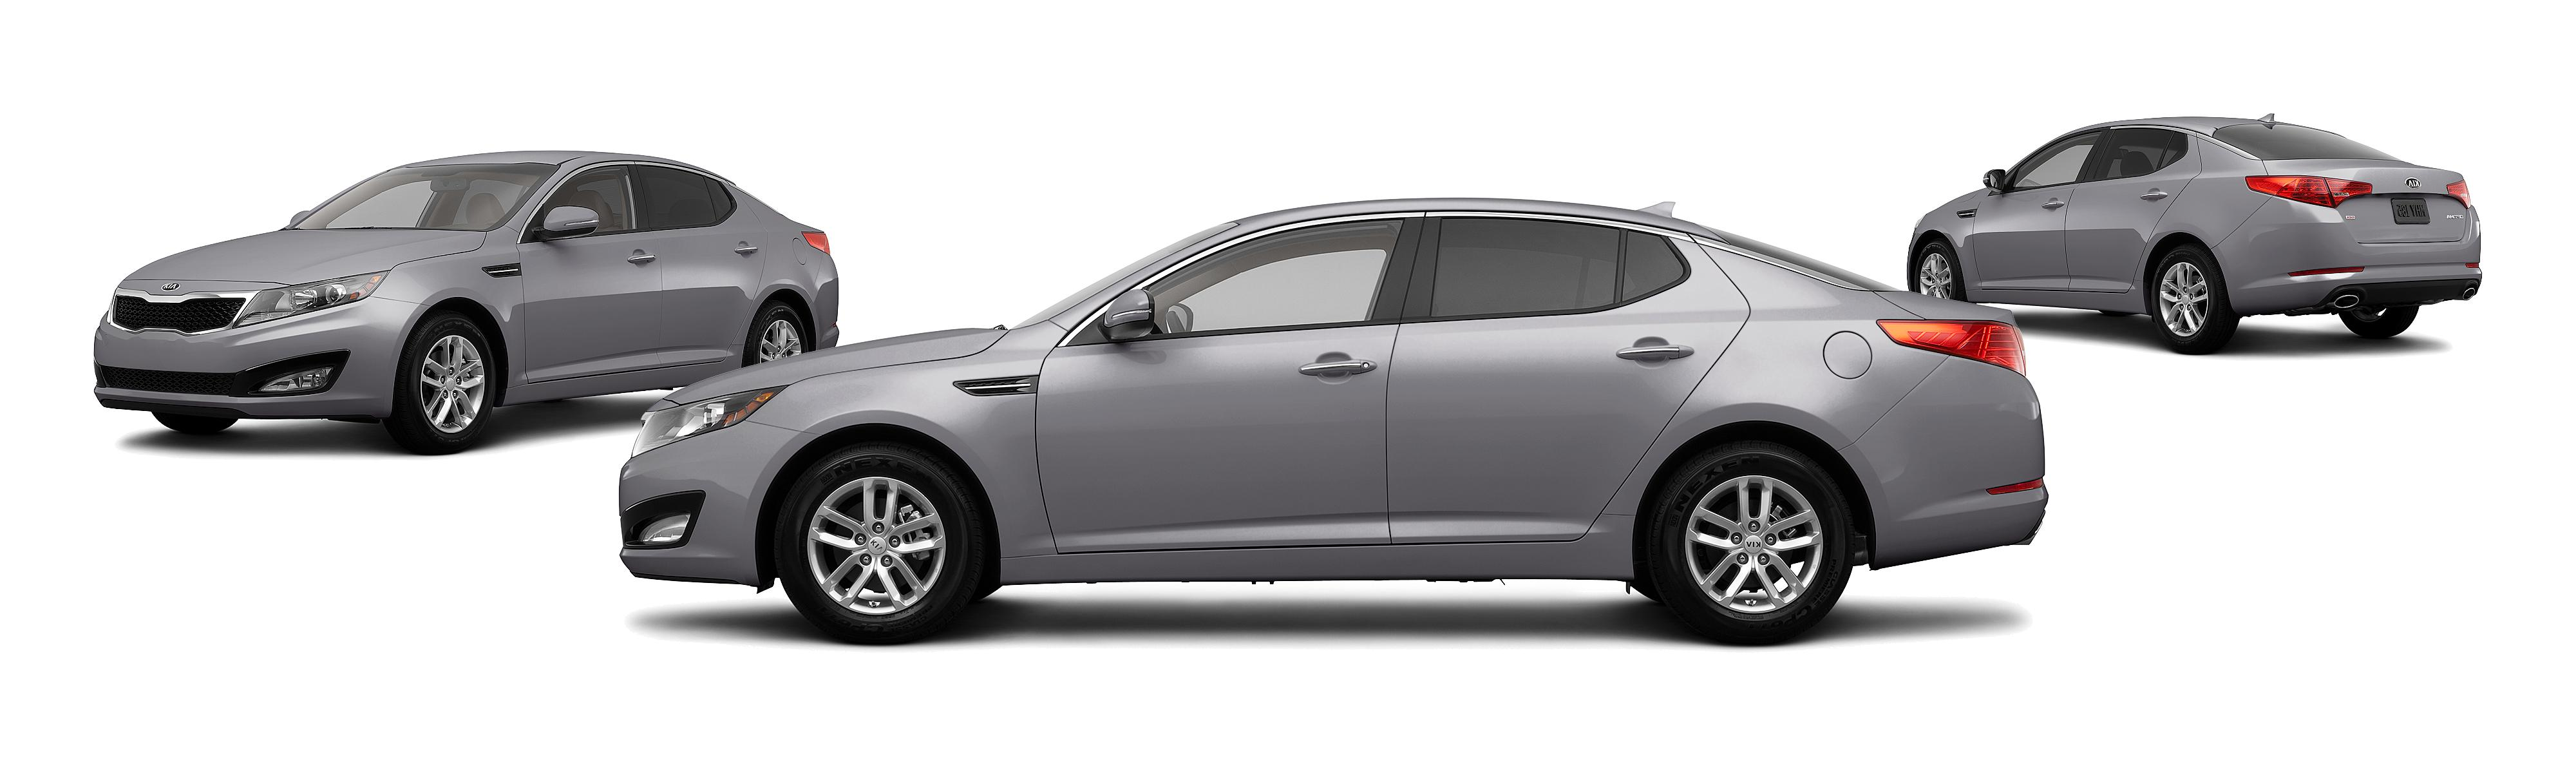 kia optima car hybrid with help package a reviews content premium find i reviewed the